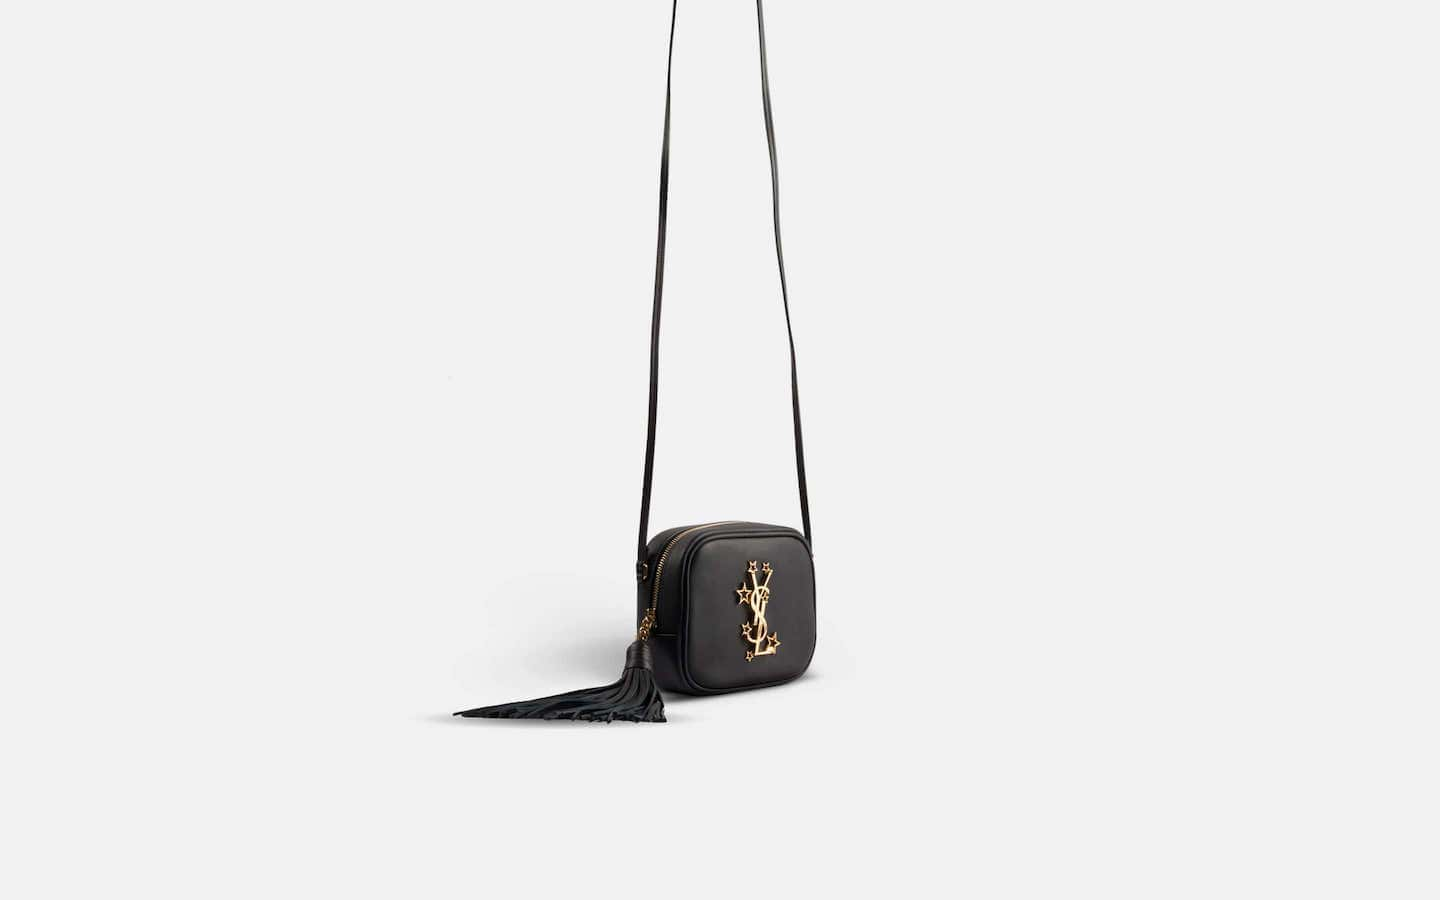 YSL_Monogram_Blogger_Bag_Black_Shoulder_Bag_Angle_Chain-min